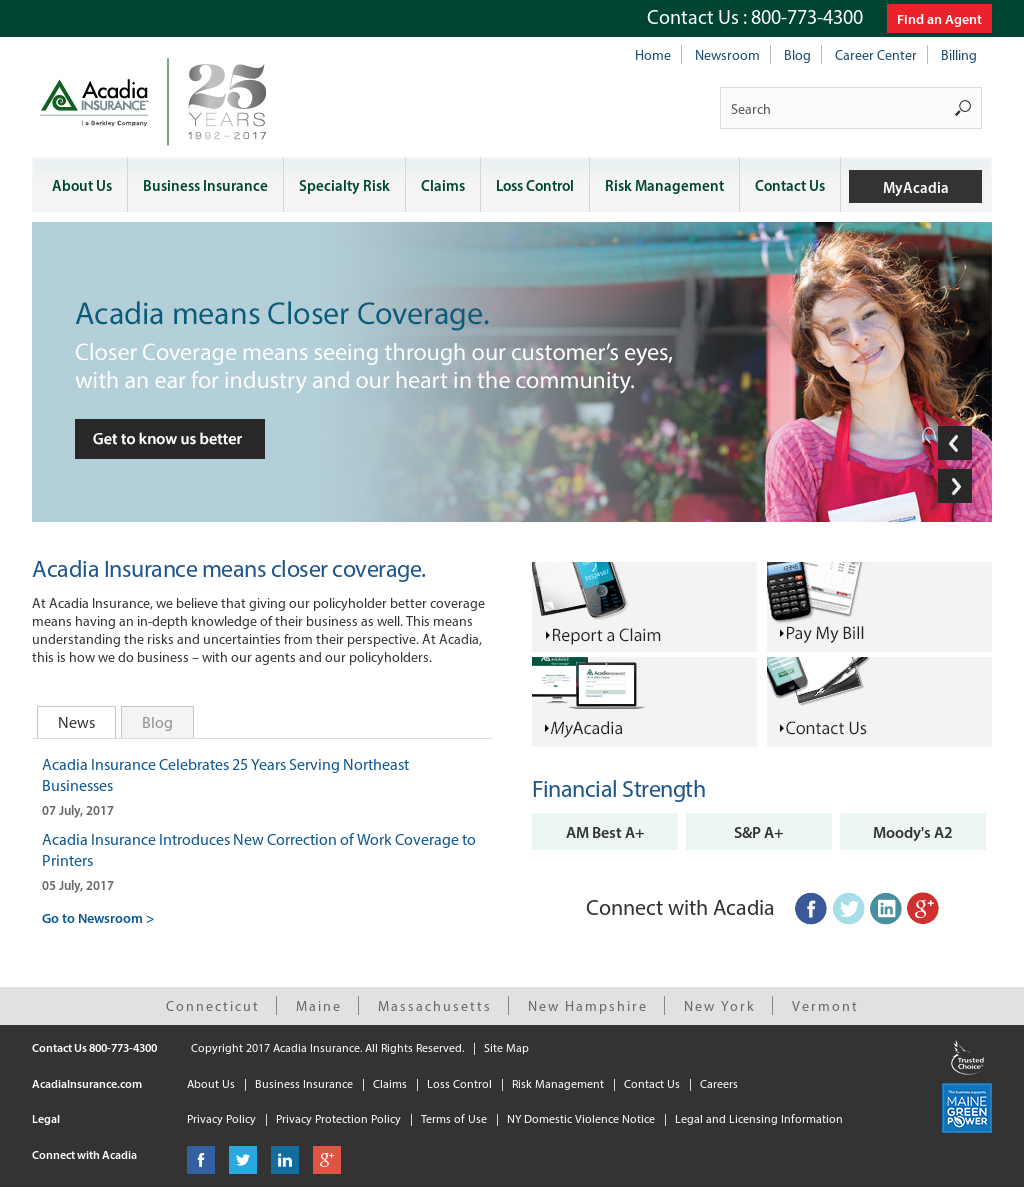 Acadia Insurance Competitors, Revenue and Employees - Owler